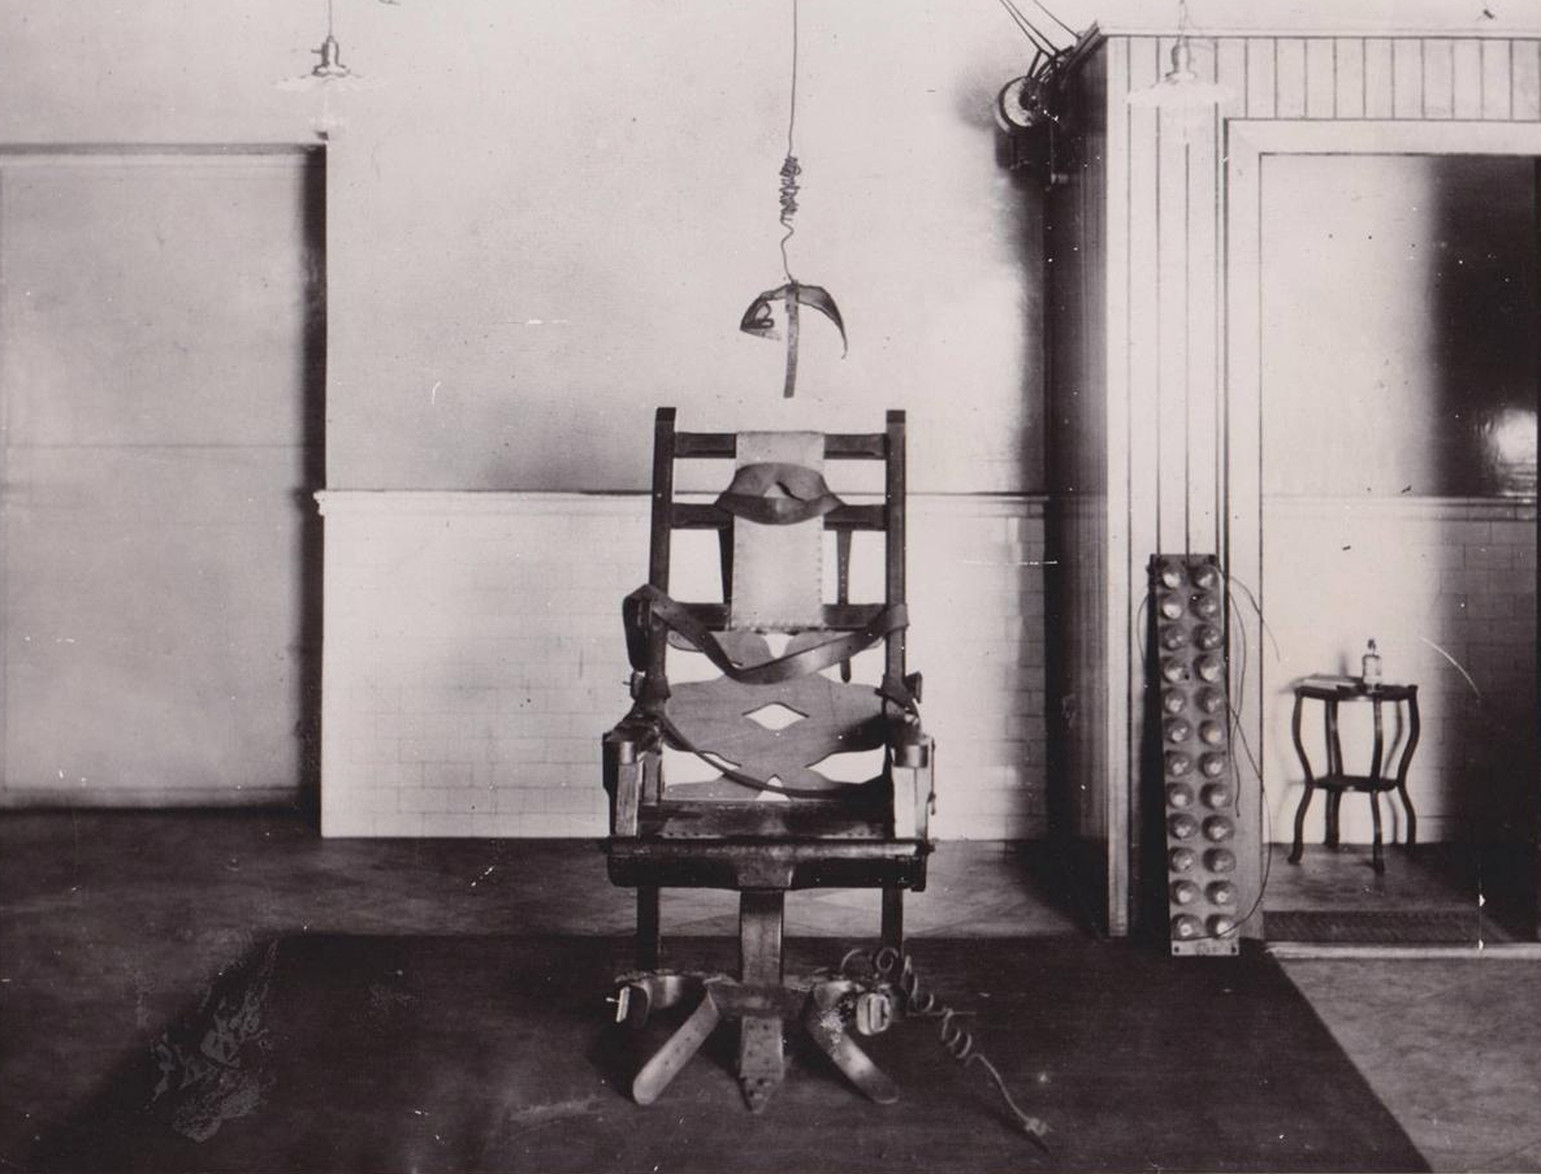 First electric chair victim - The Original And First Electric Chair That Was Used To Execute A Prisoner On August 6